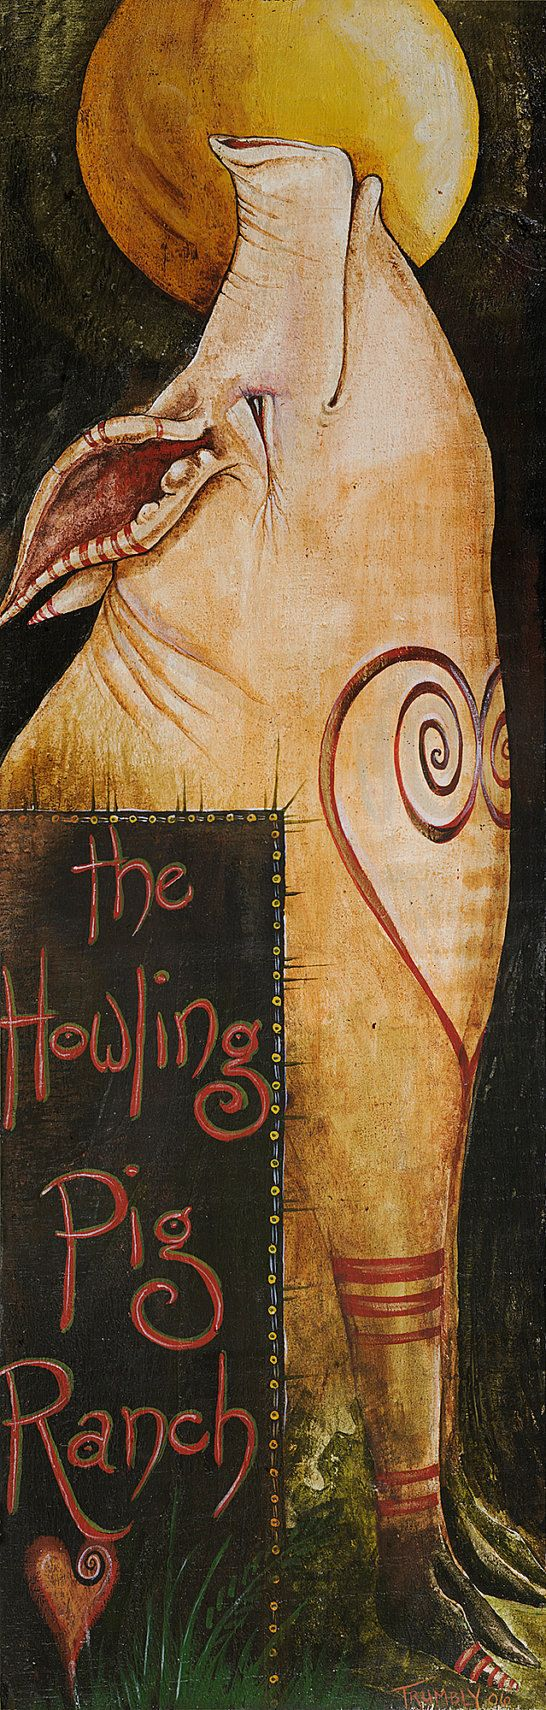 The Howling Pig Ranch by Shanna Trumbly~ 7 x 19.75 Small Canvas Giclee Print